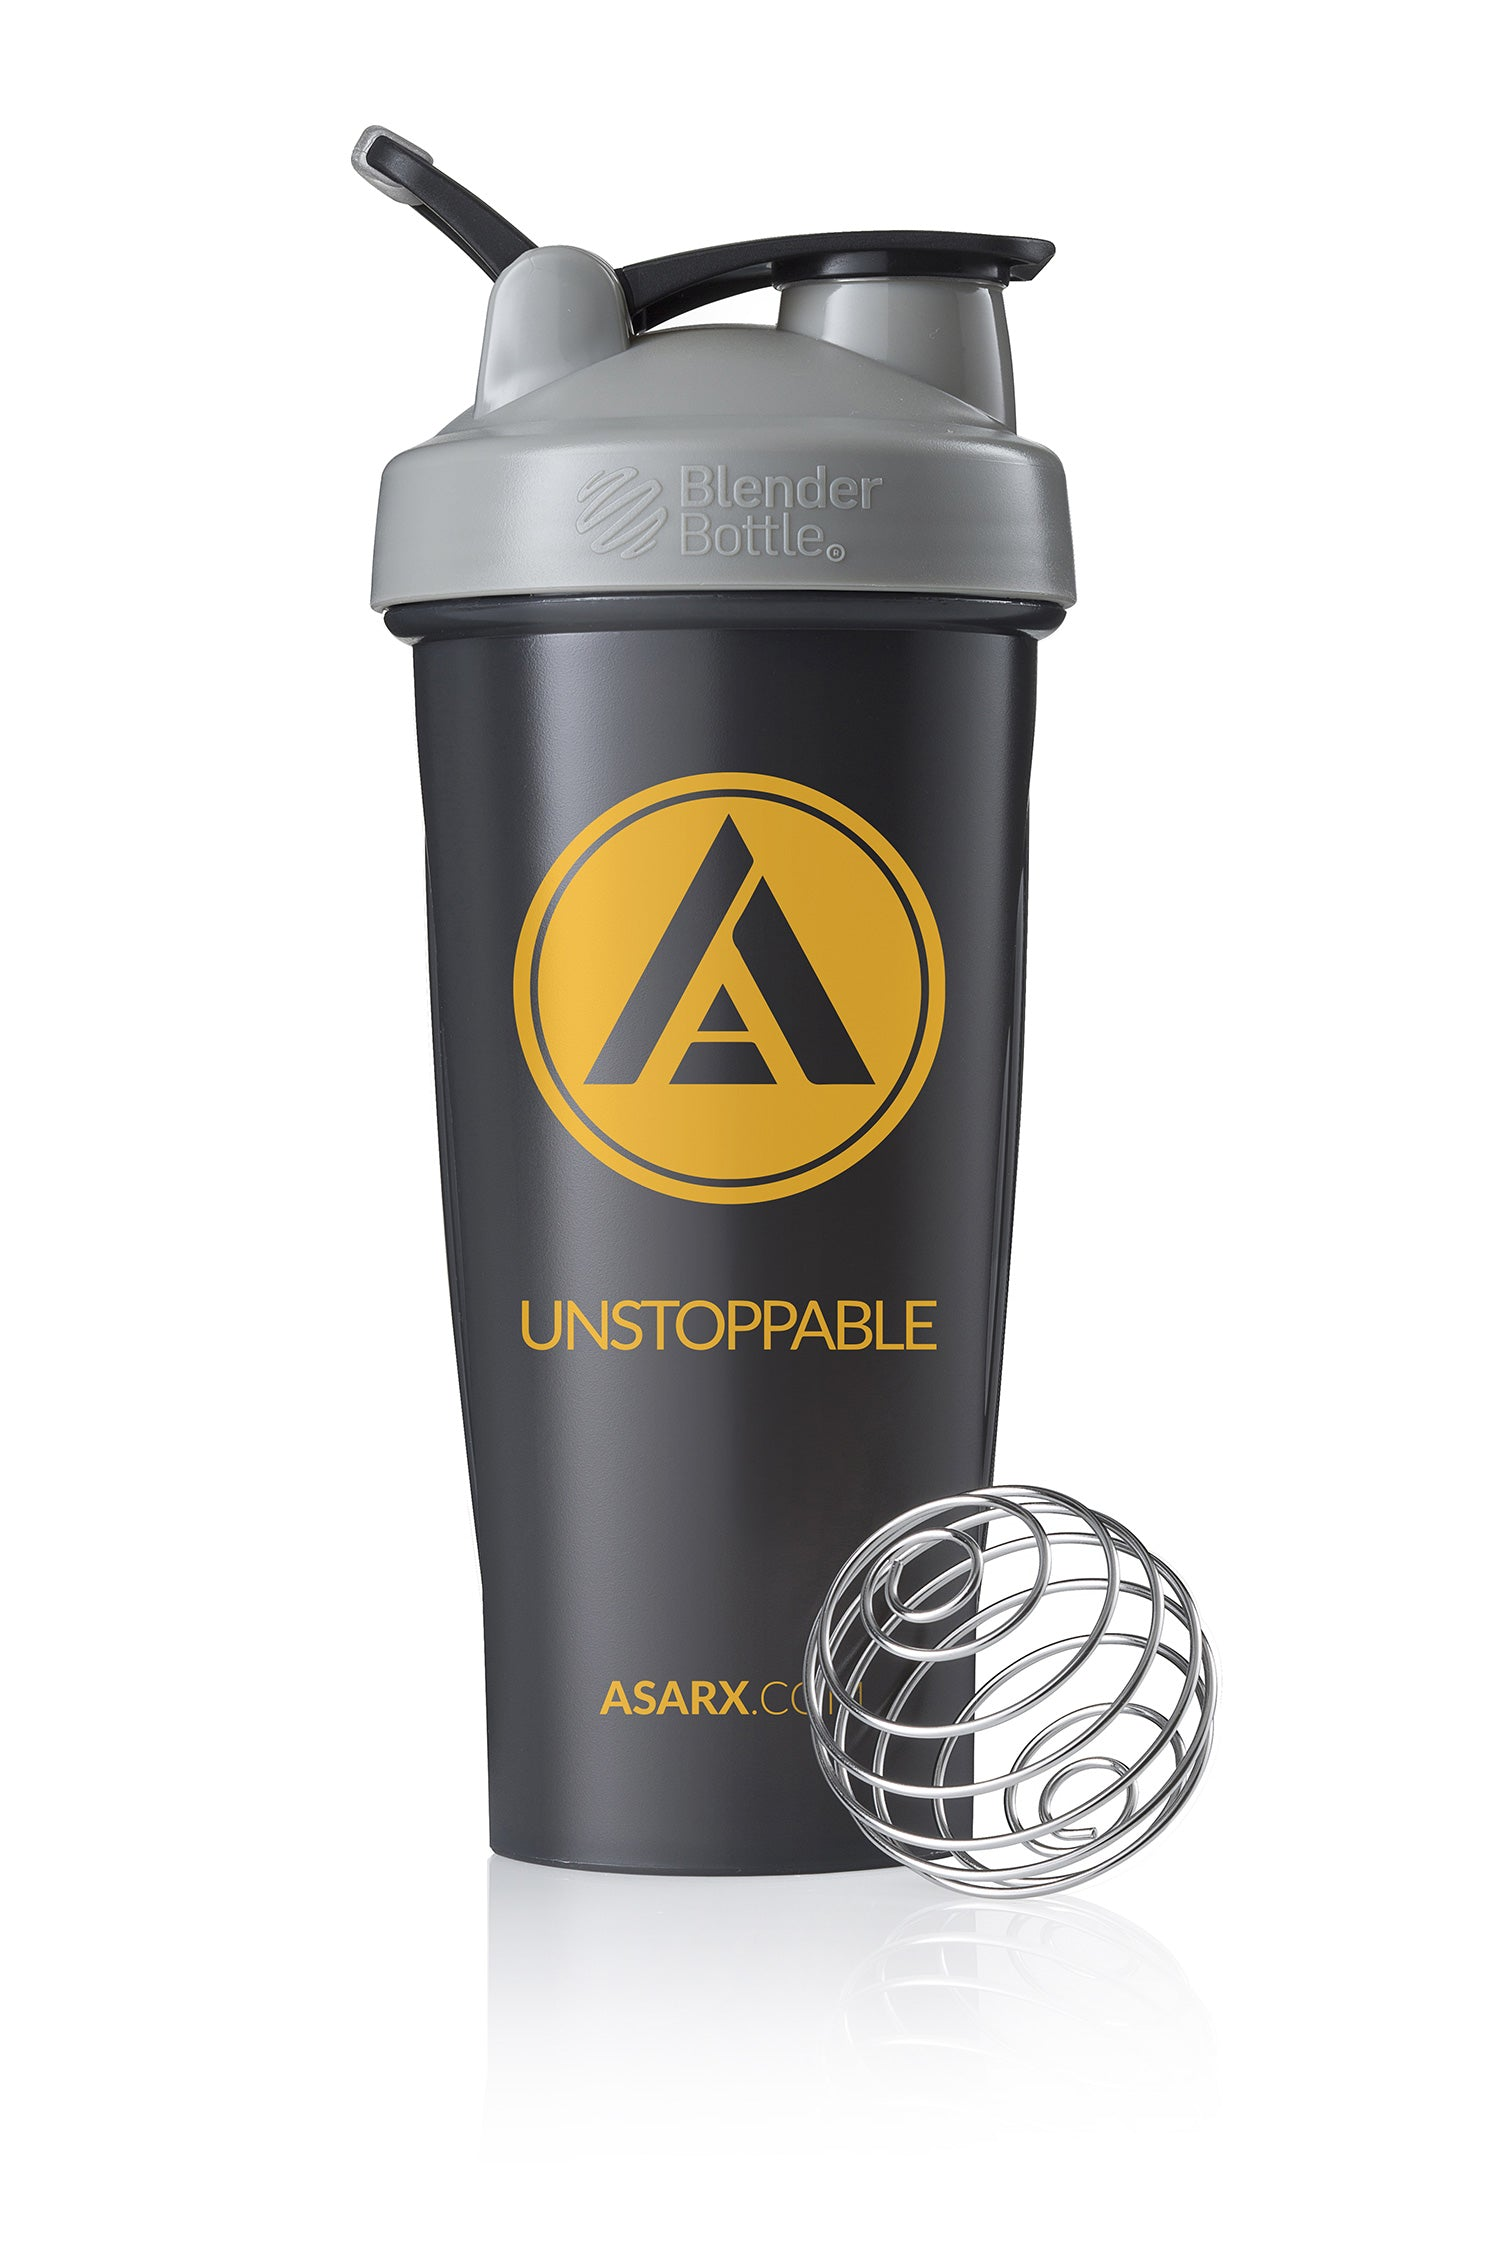 28 oz BPA Free Unstoppable Blender Bottle